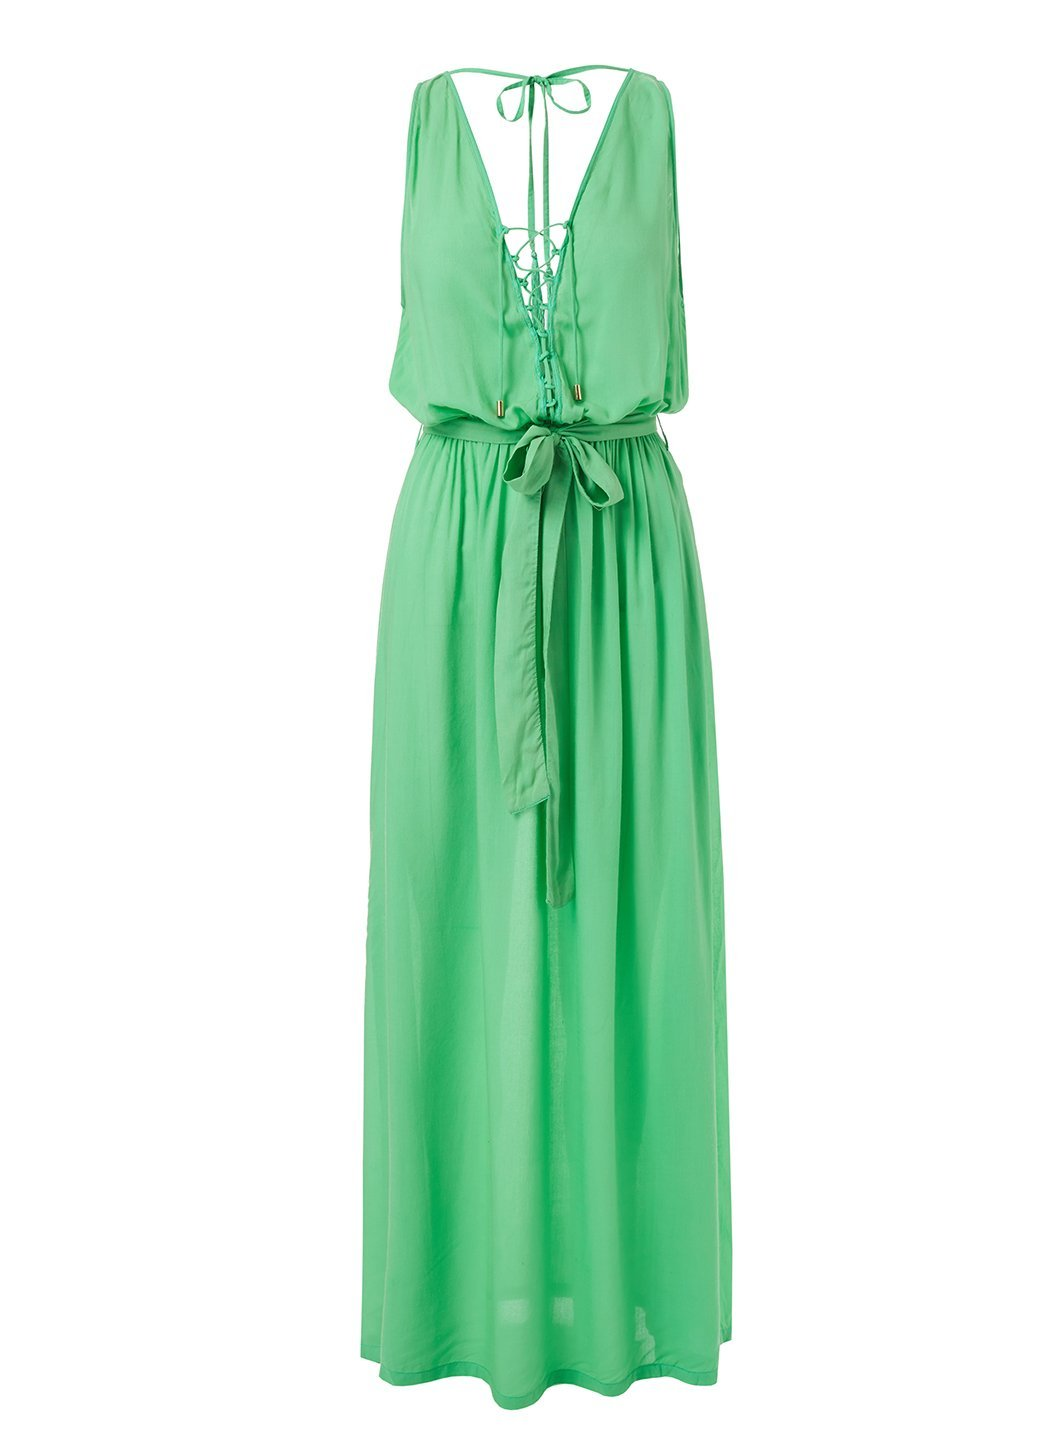 jacquie green laceup belted maxi dress 2019